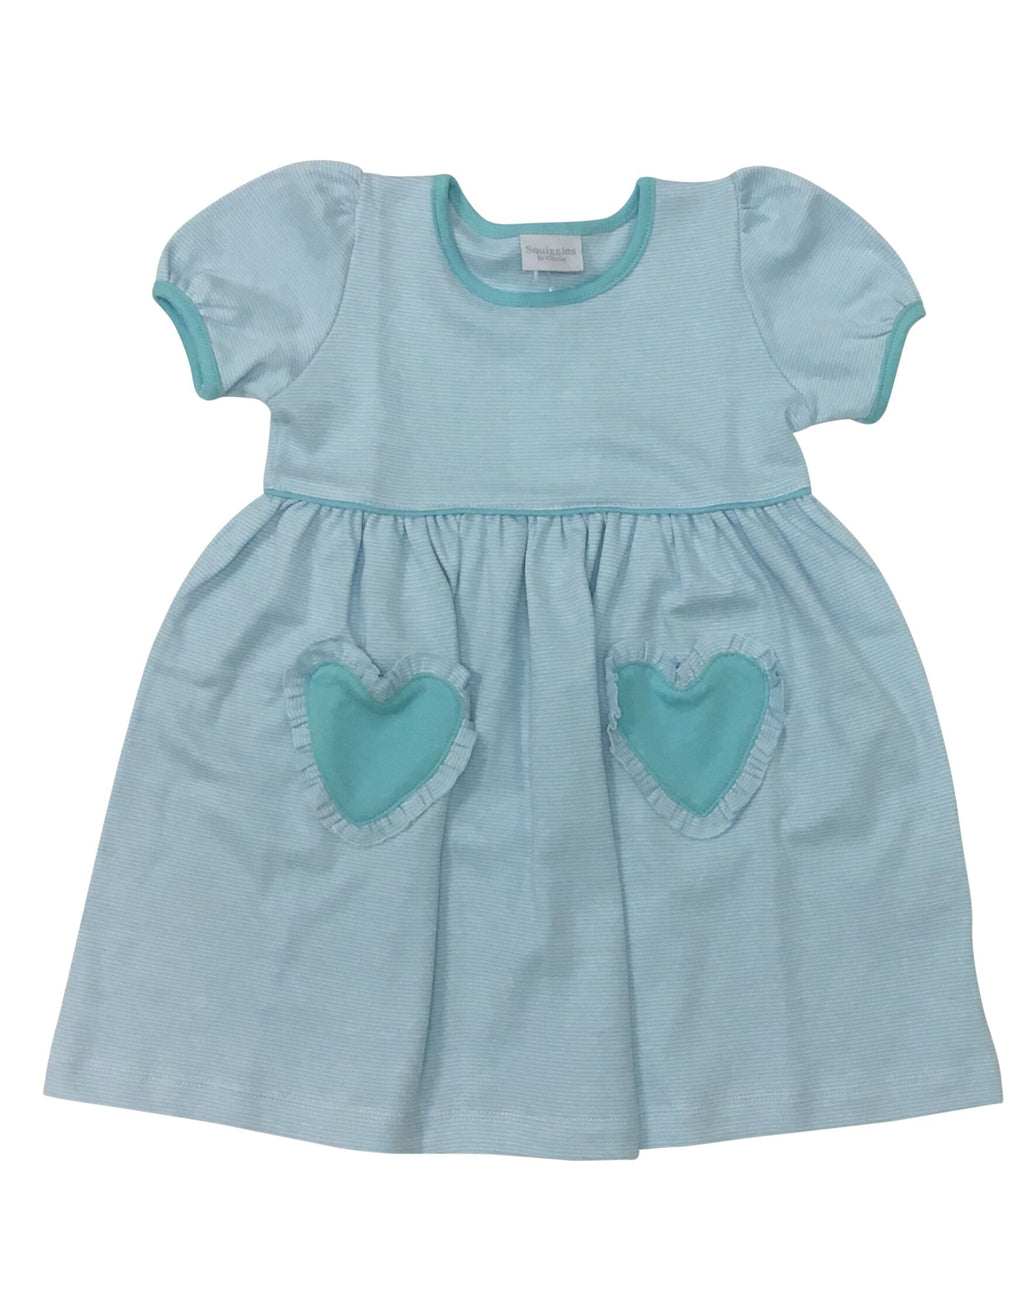 Aqua Stripe Dress with Aqua Heart Pocket - Born Childrens Boutique